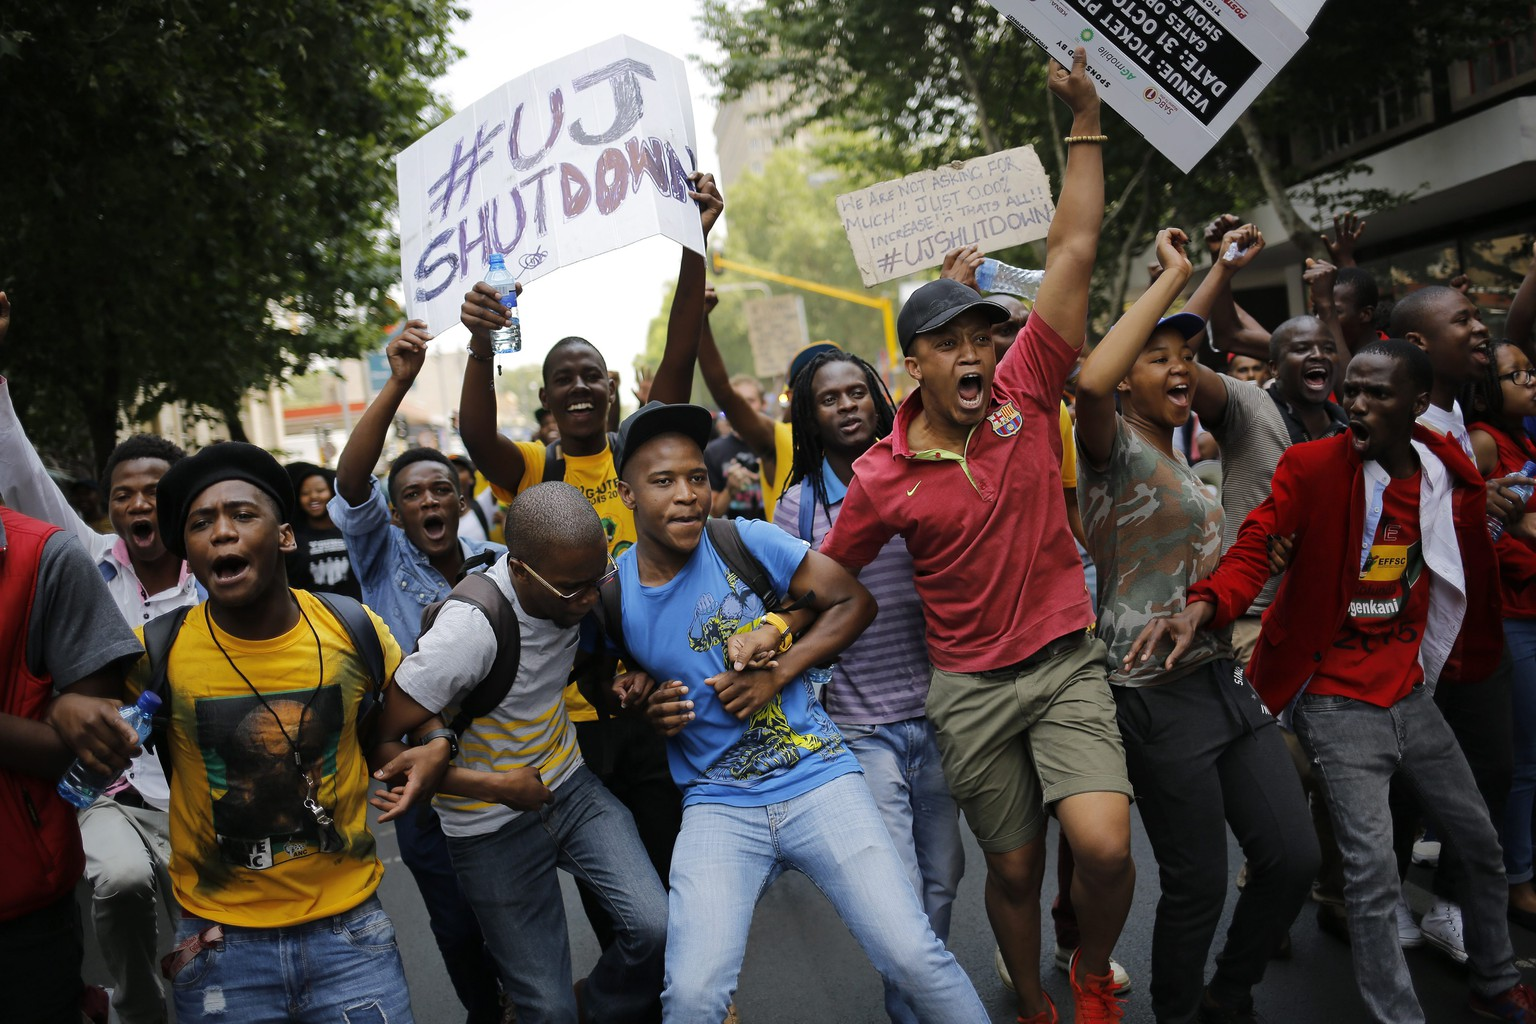 epa04988709 Some of the thousands of students from Wits University demonstrate during another day of protest against fee increases at their university, Johannesburg, South Africa, 22 October 2015. The Wits students have been demonstrating for days against a proposed fee increase and has spread to other major universities in the country. South African students continued with their campaign across the country enforing multiple university shut downs and rolling protests against the rise in tuition fees. South African president Jacob Zuma is set to discuss the fees issue with student leaders in the capital Pretoria.  EPA/KIM LUDBROOK